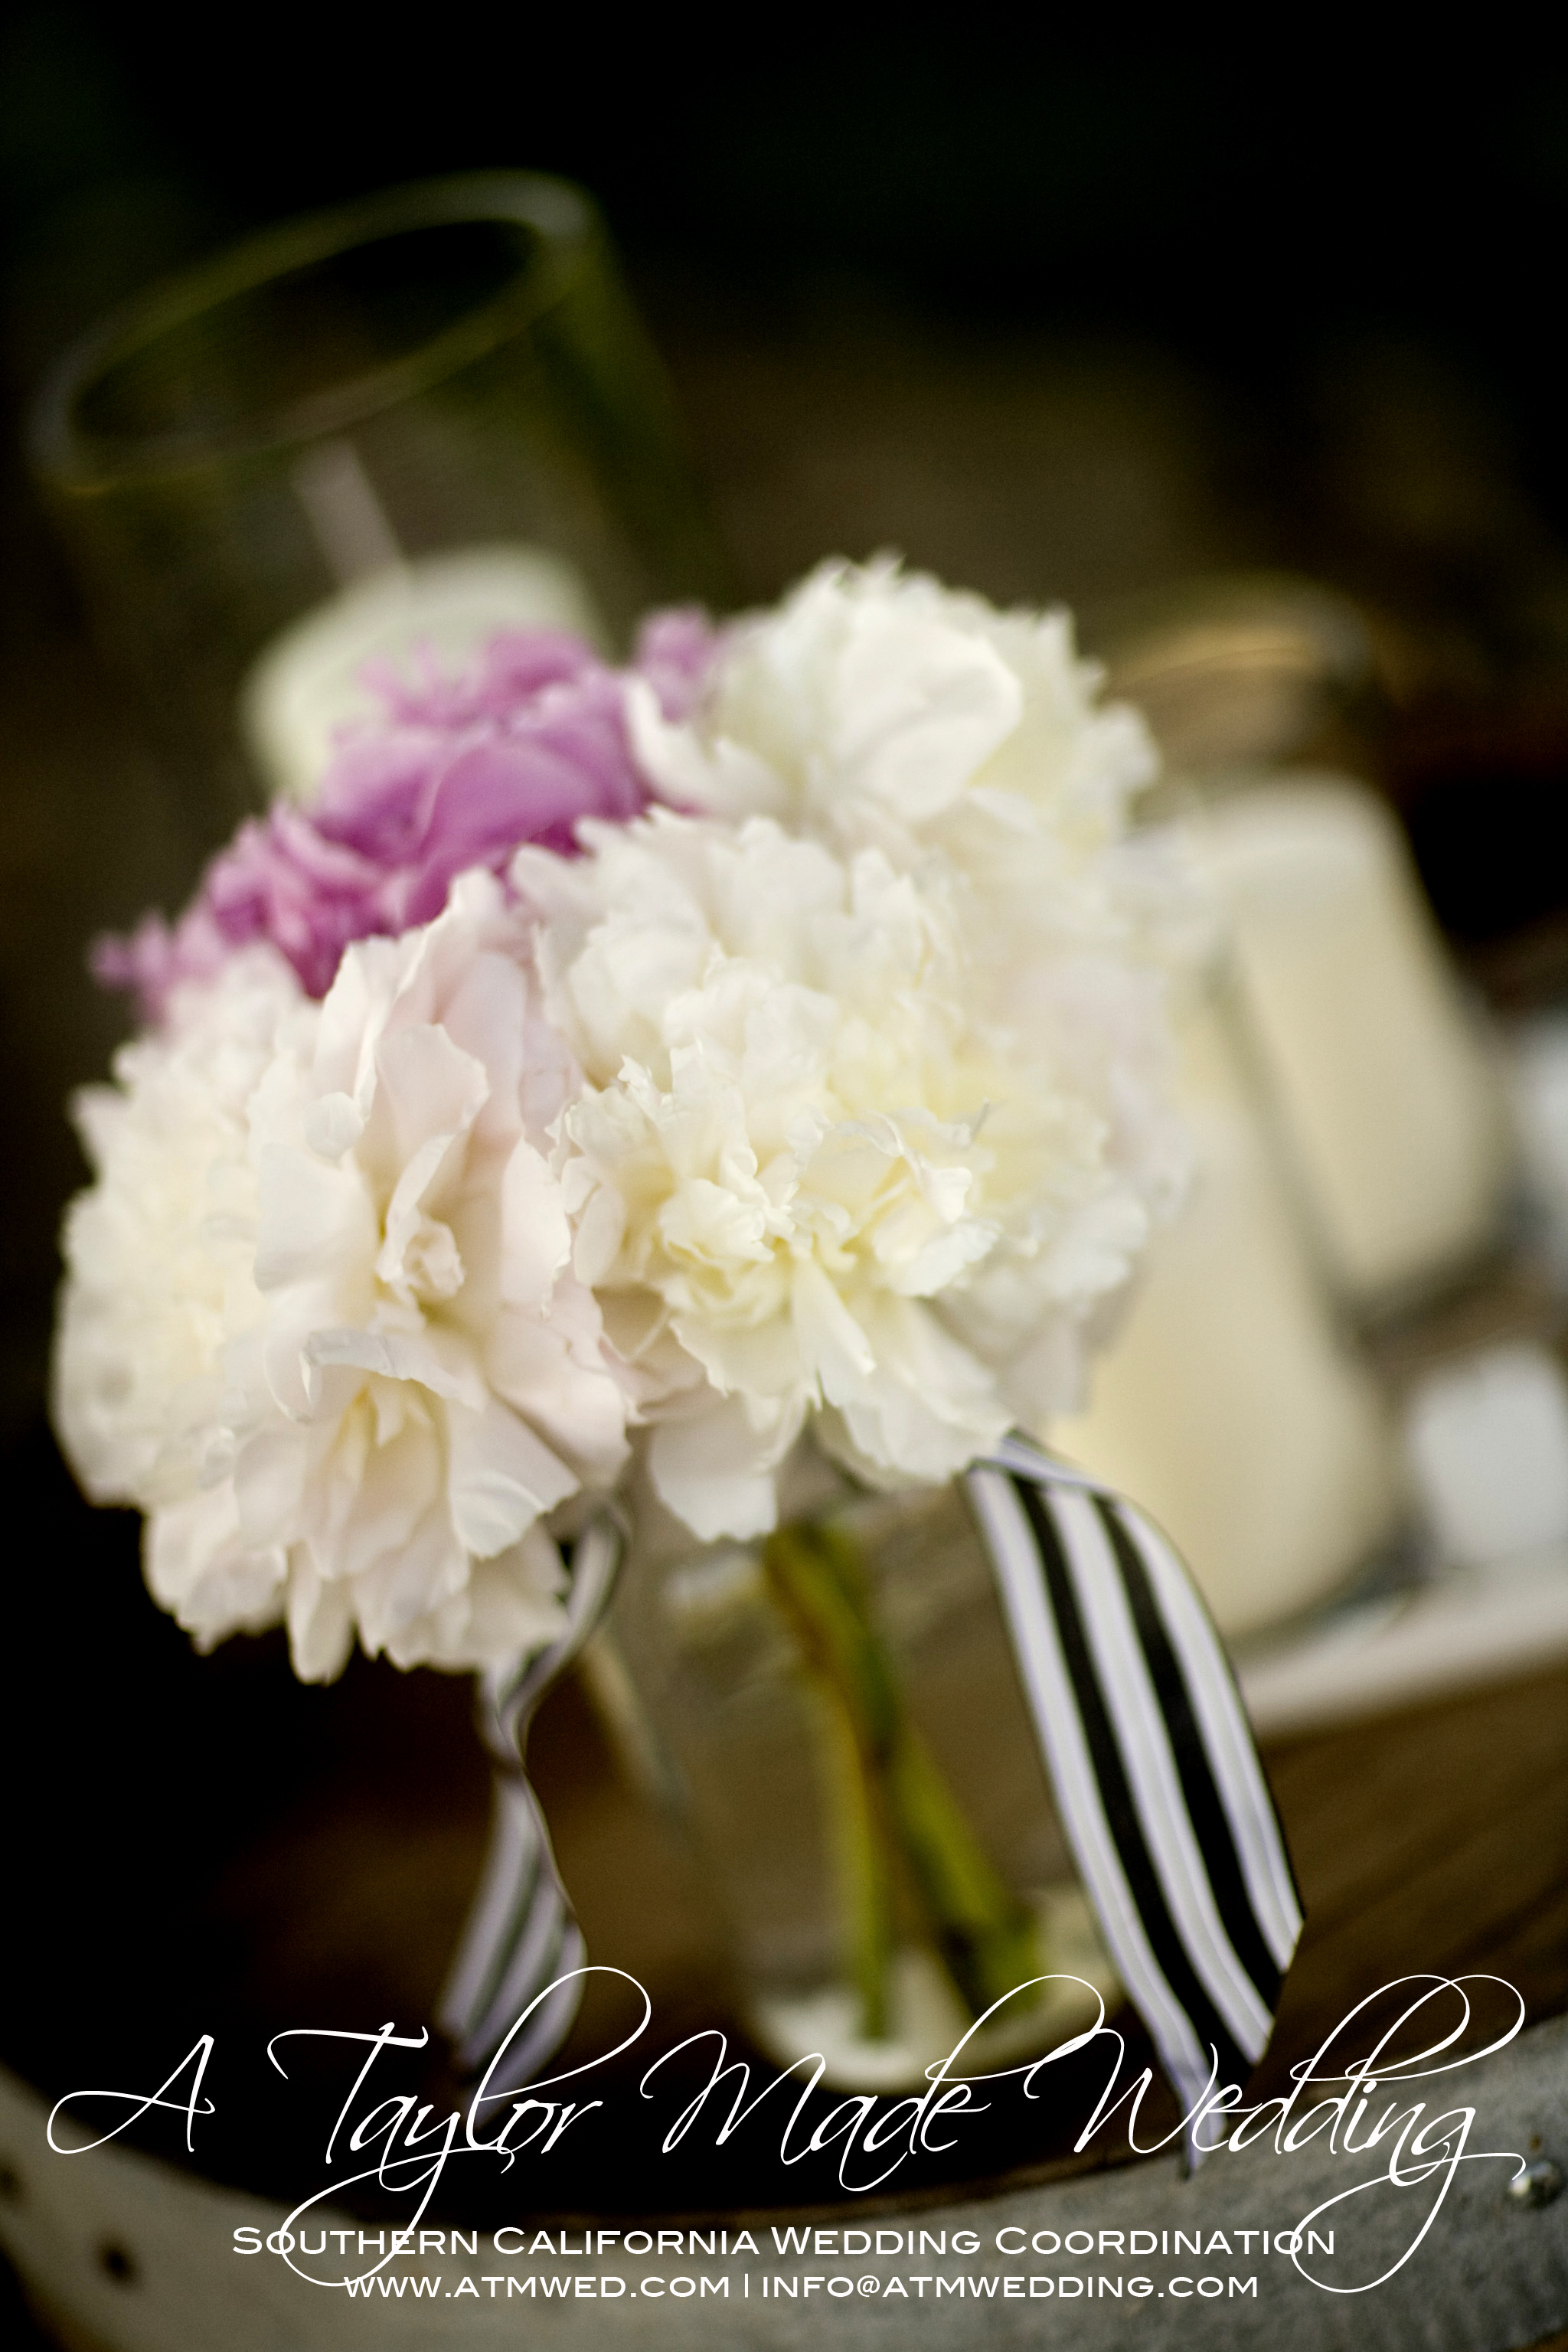 Flowers & Decor, white, pink, black, silver, Flowers, A taylor made wedding